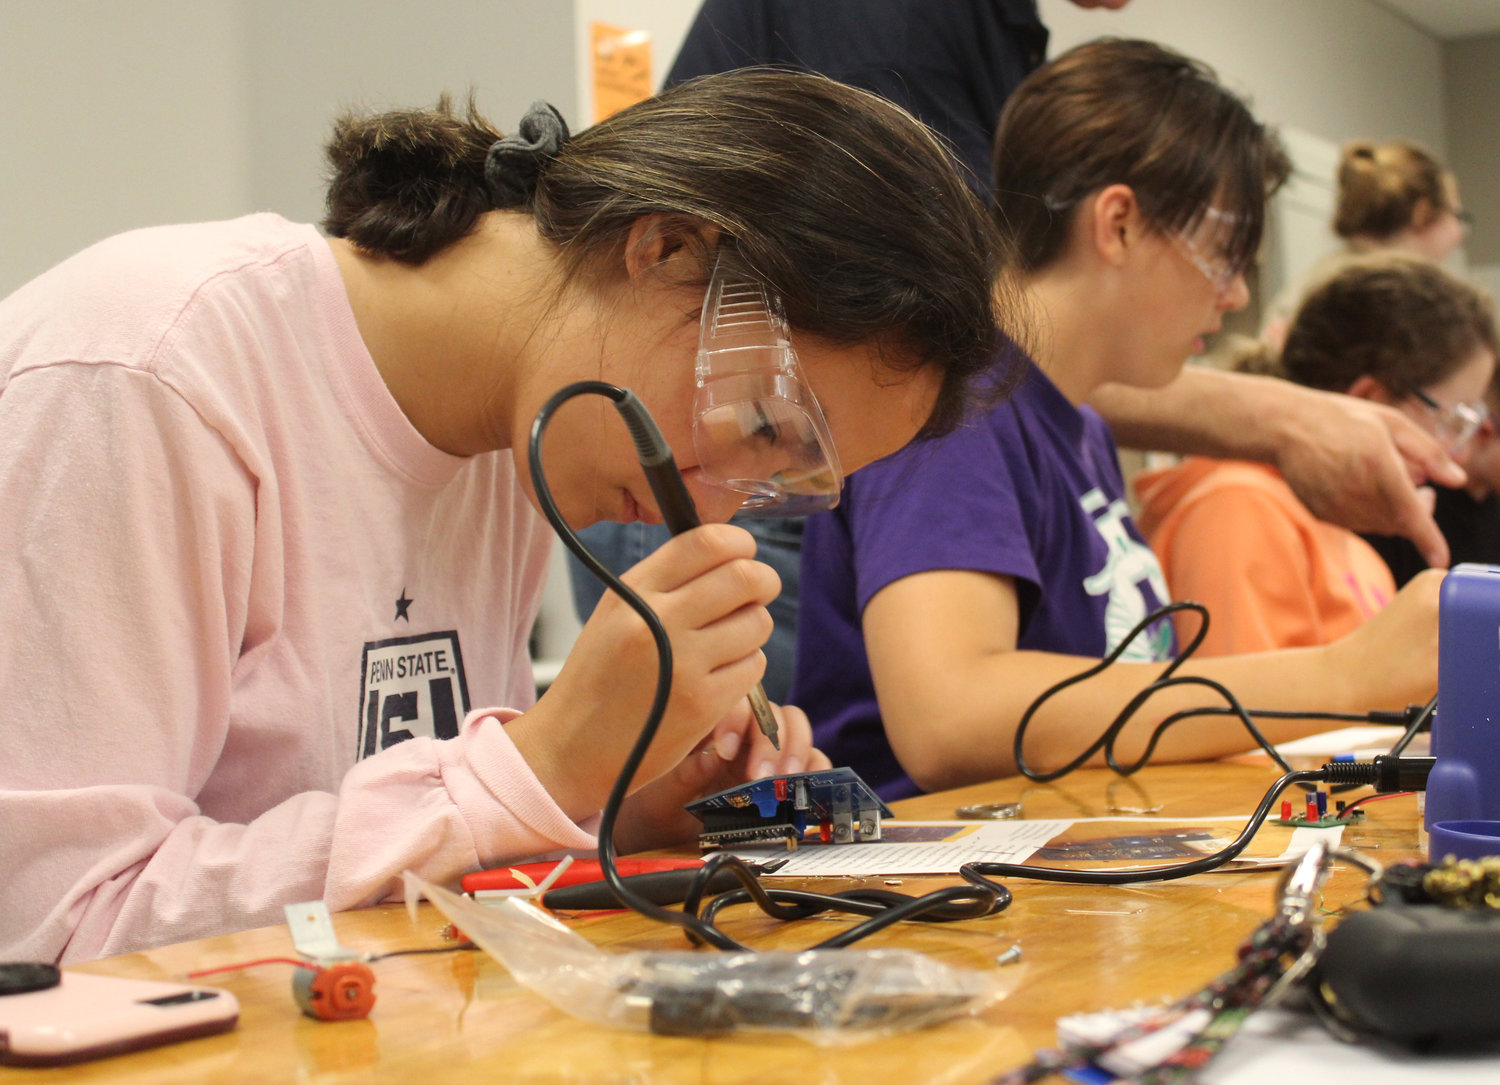 Central Dauphin student Aniela Lee works during the electrical engineering lab during Penn State Harrisburg's STEM Summer Enrichment Program on June 19.